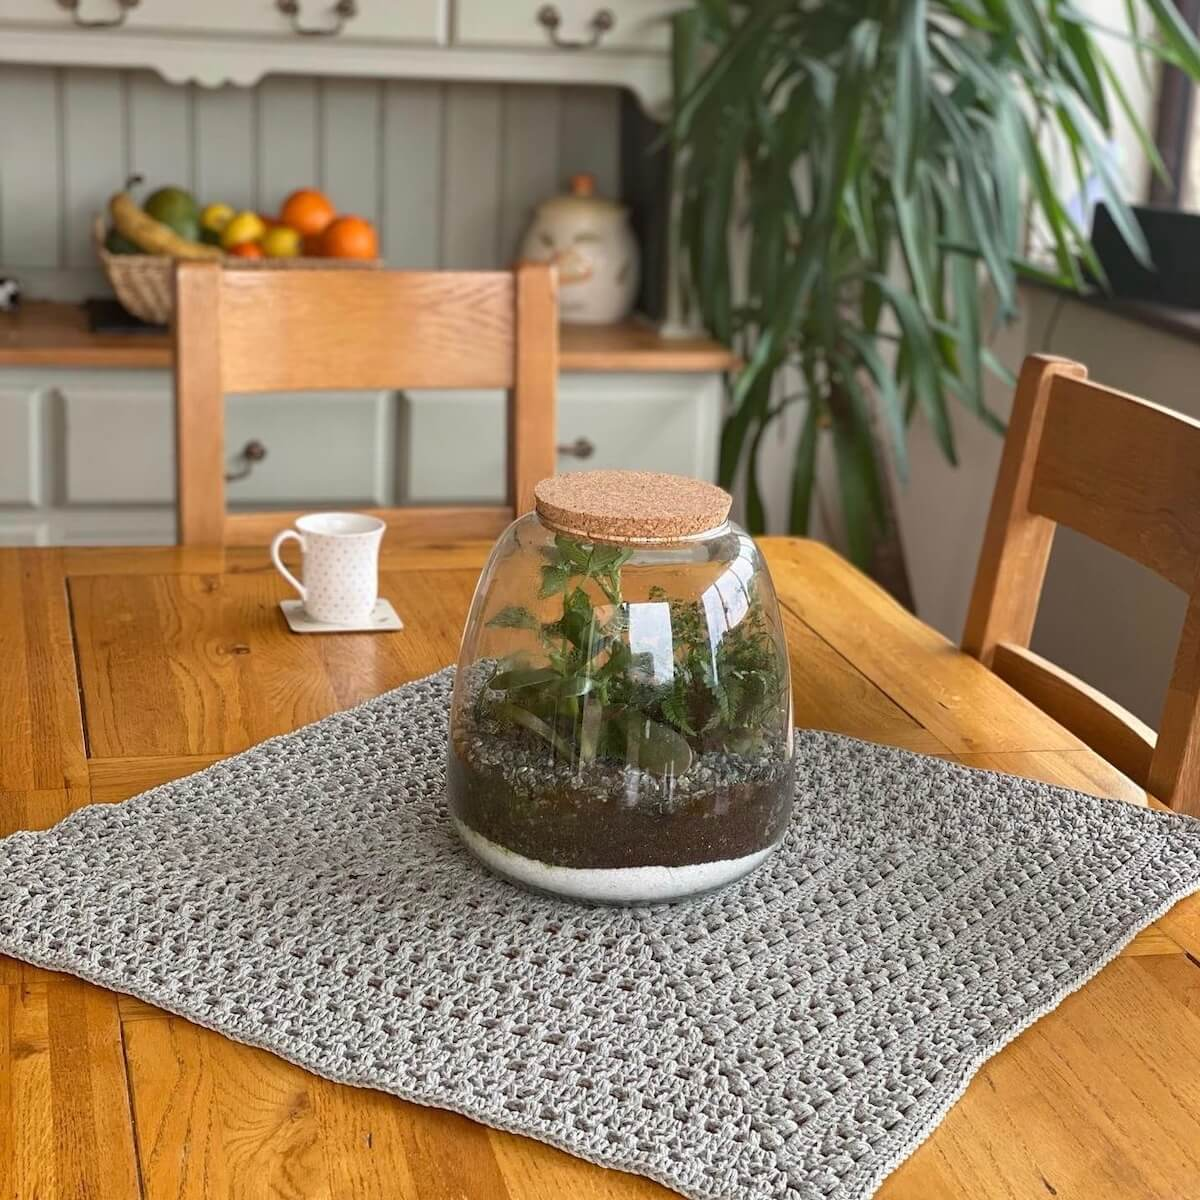 Crochet granny square dining table mat made by woolly_fingers - free crochet pattern by Wilmade